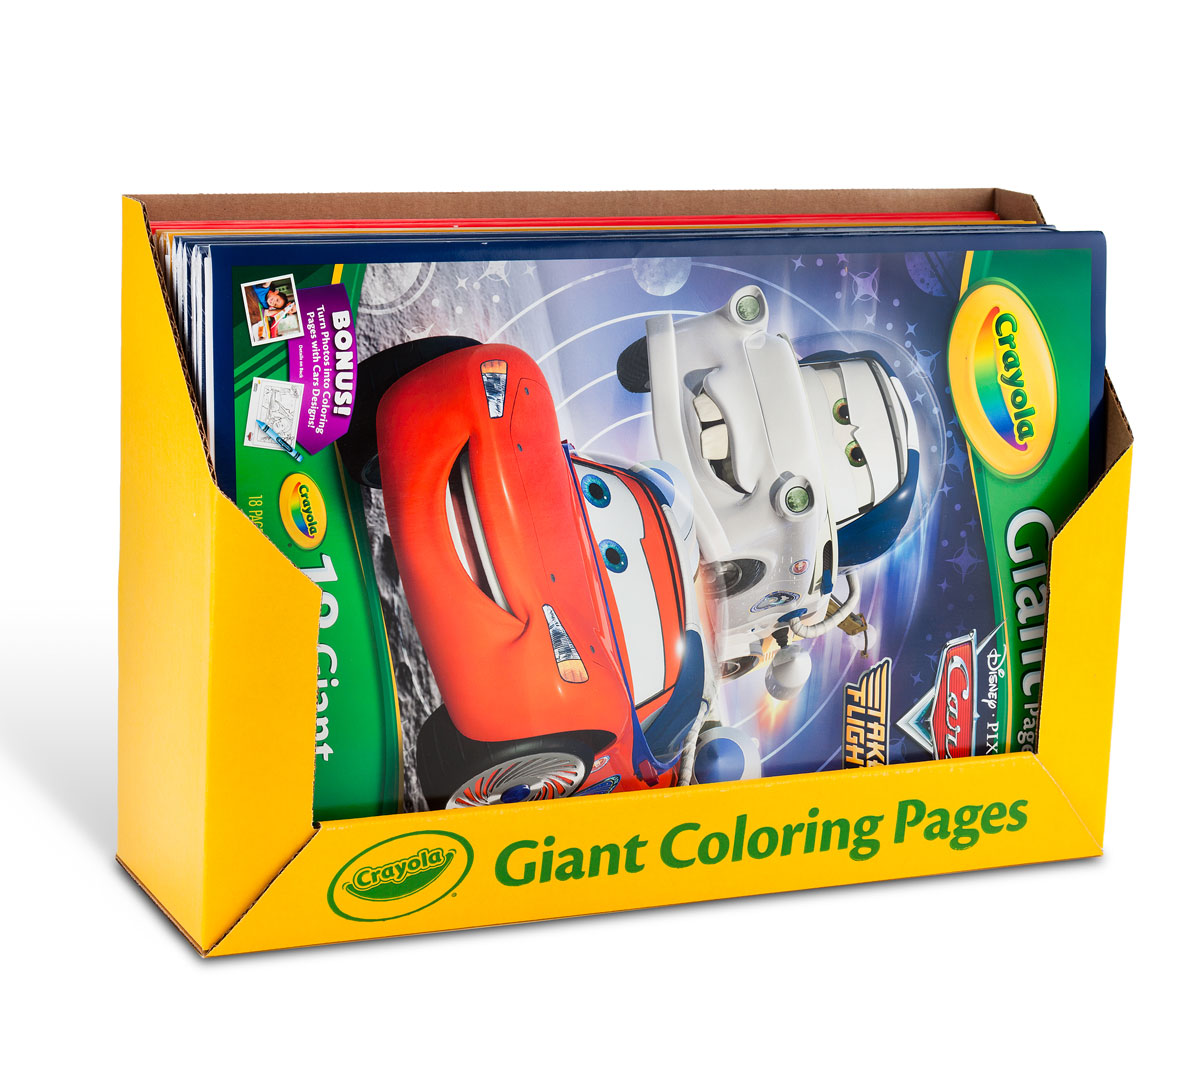 Crayons And Coloring Books In Bulk | www.tollebild.com